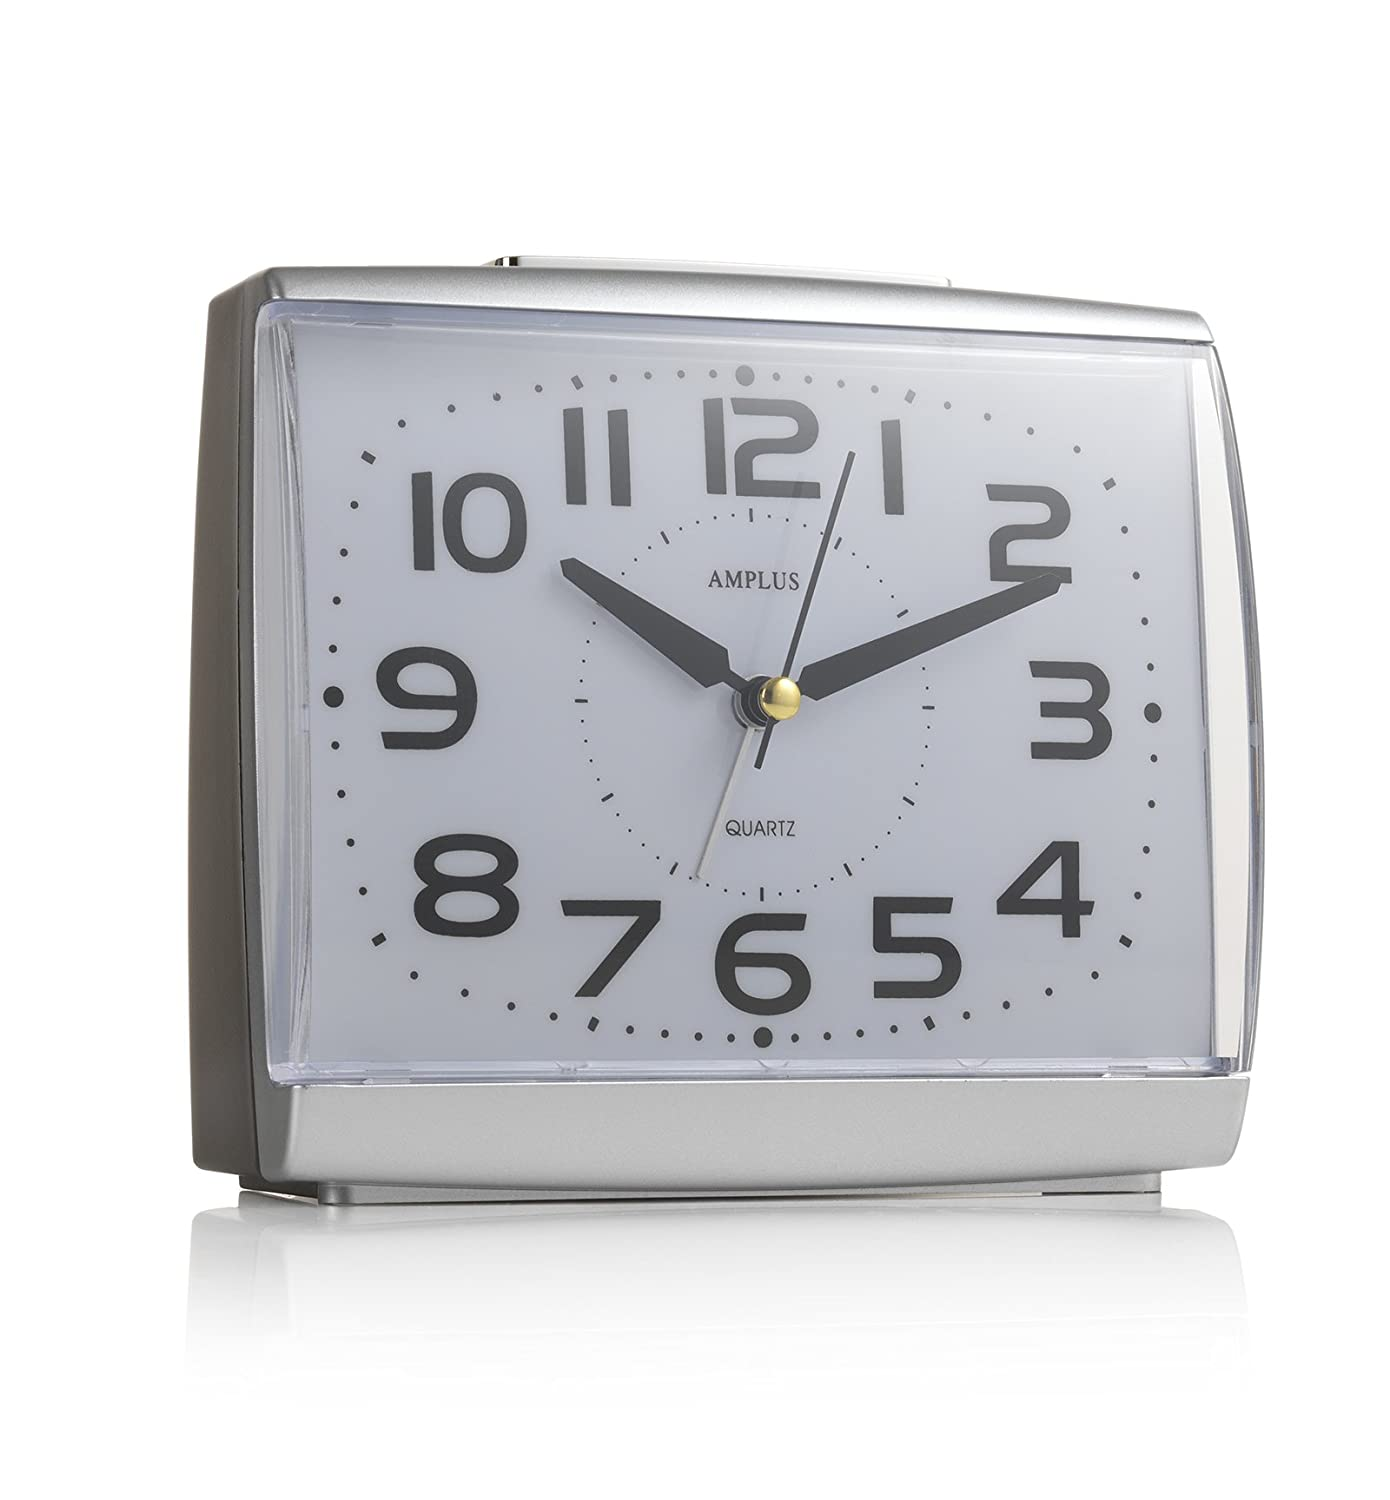 KG Homewares Large Numbers Dial With Silent Sweep Light Snooze Alarm Clock The Homewares Company